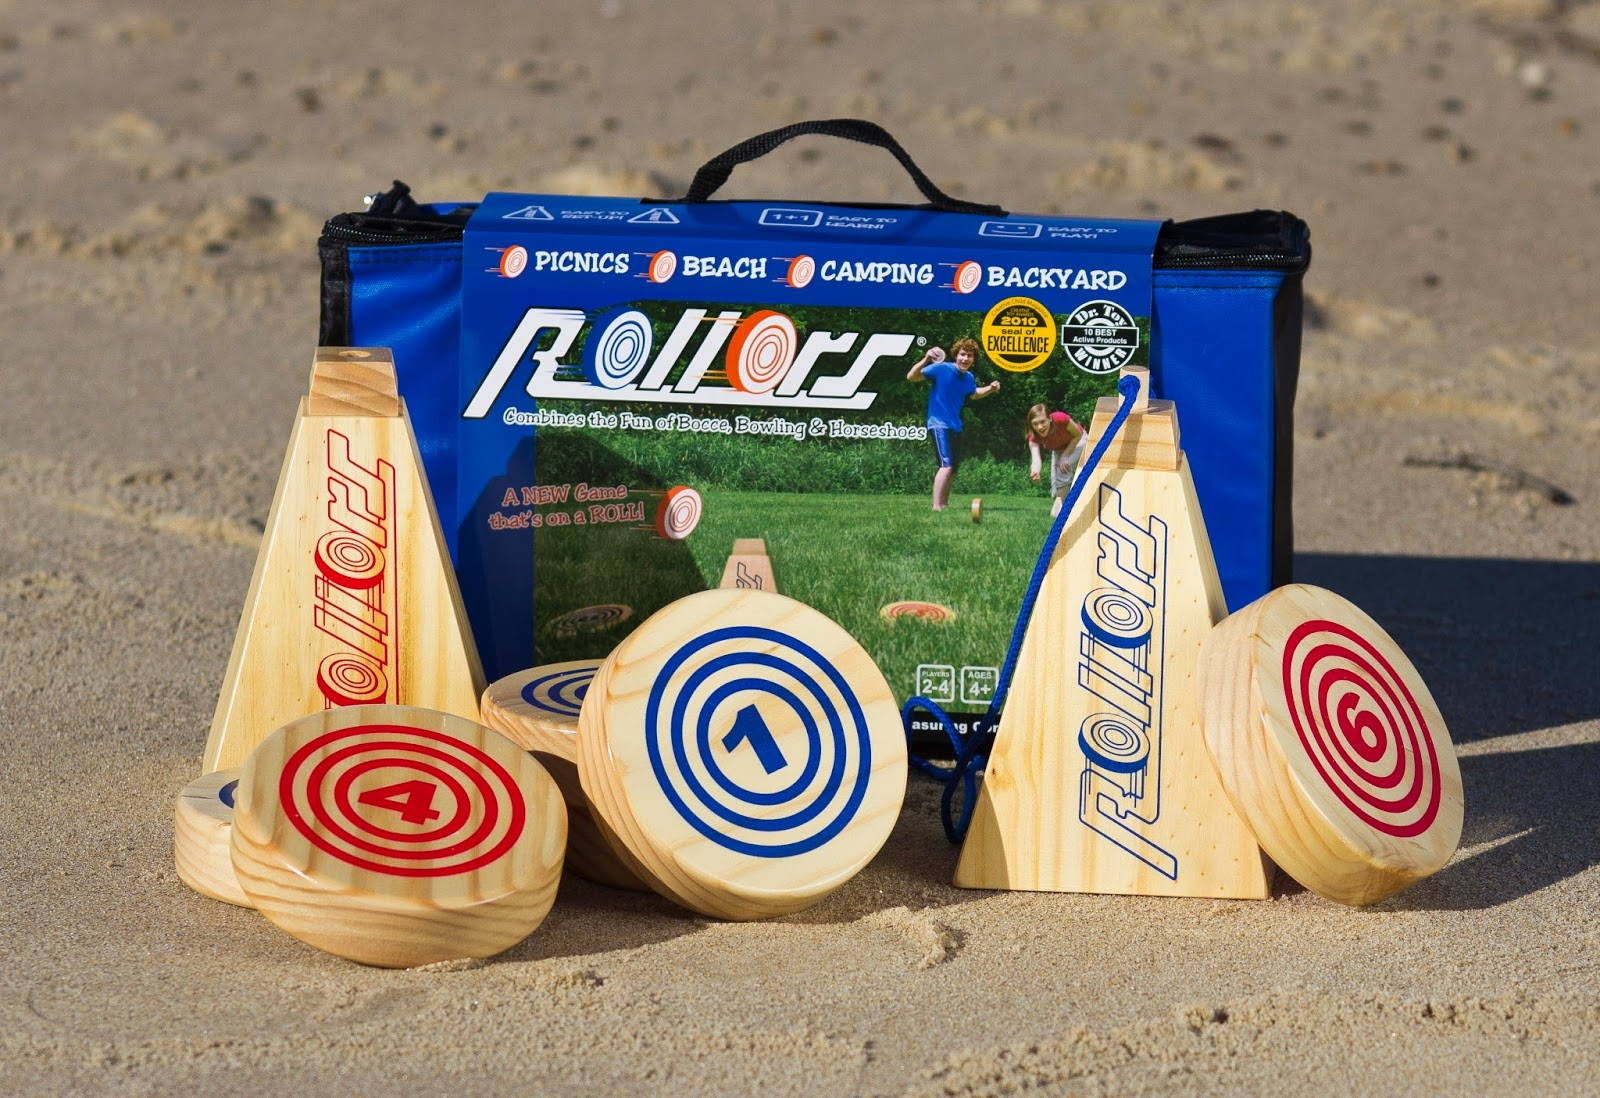 Enter the Rollors Backyard Game Giveaway. Ends 8/18/14.